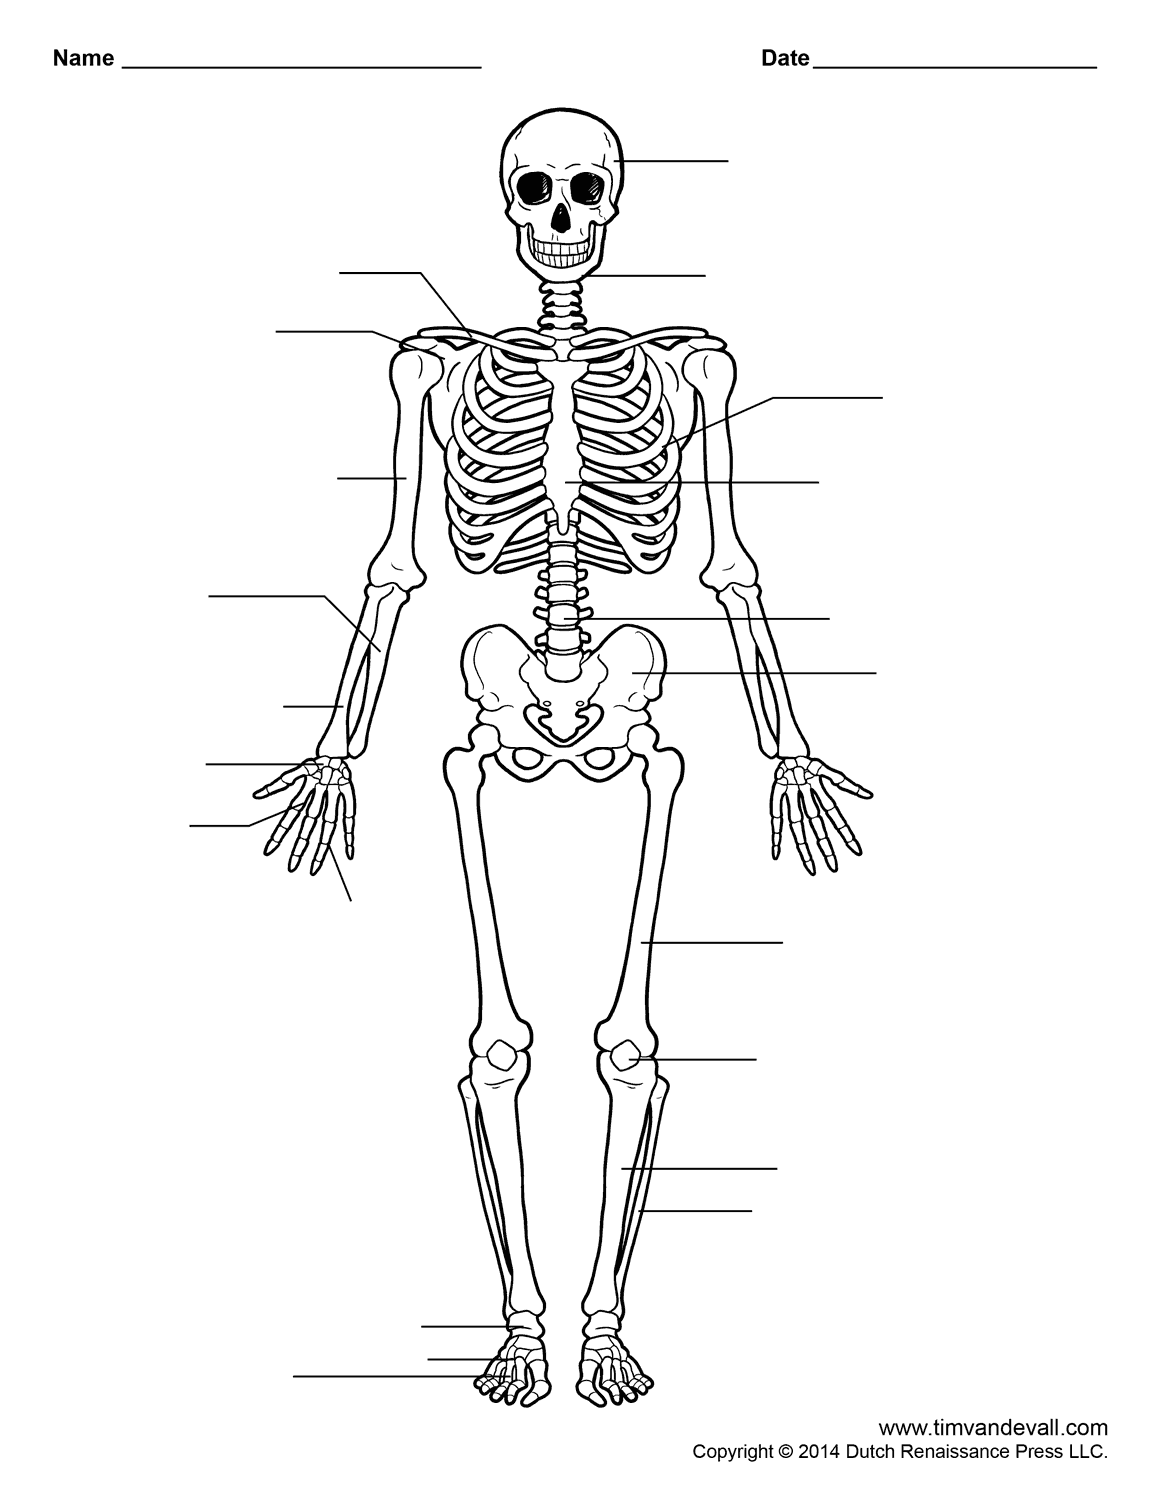 Worksheets Free Printable Anatomy Worksheets free printable human skeleton worksheet for students and teachers